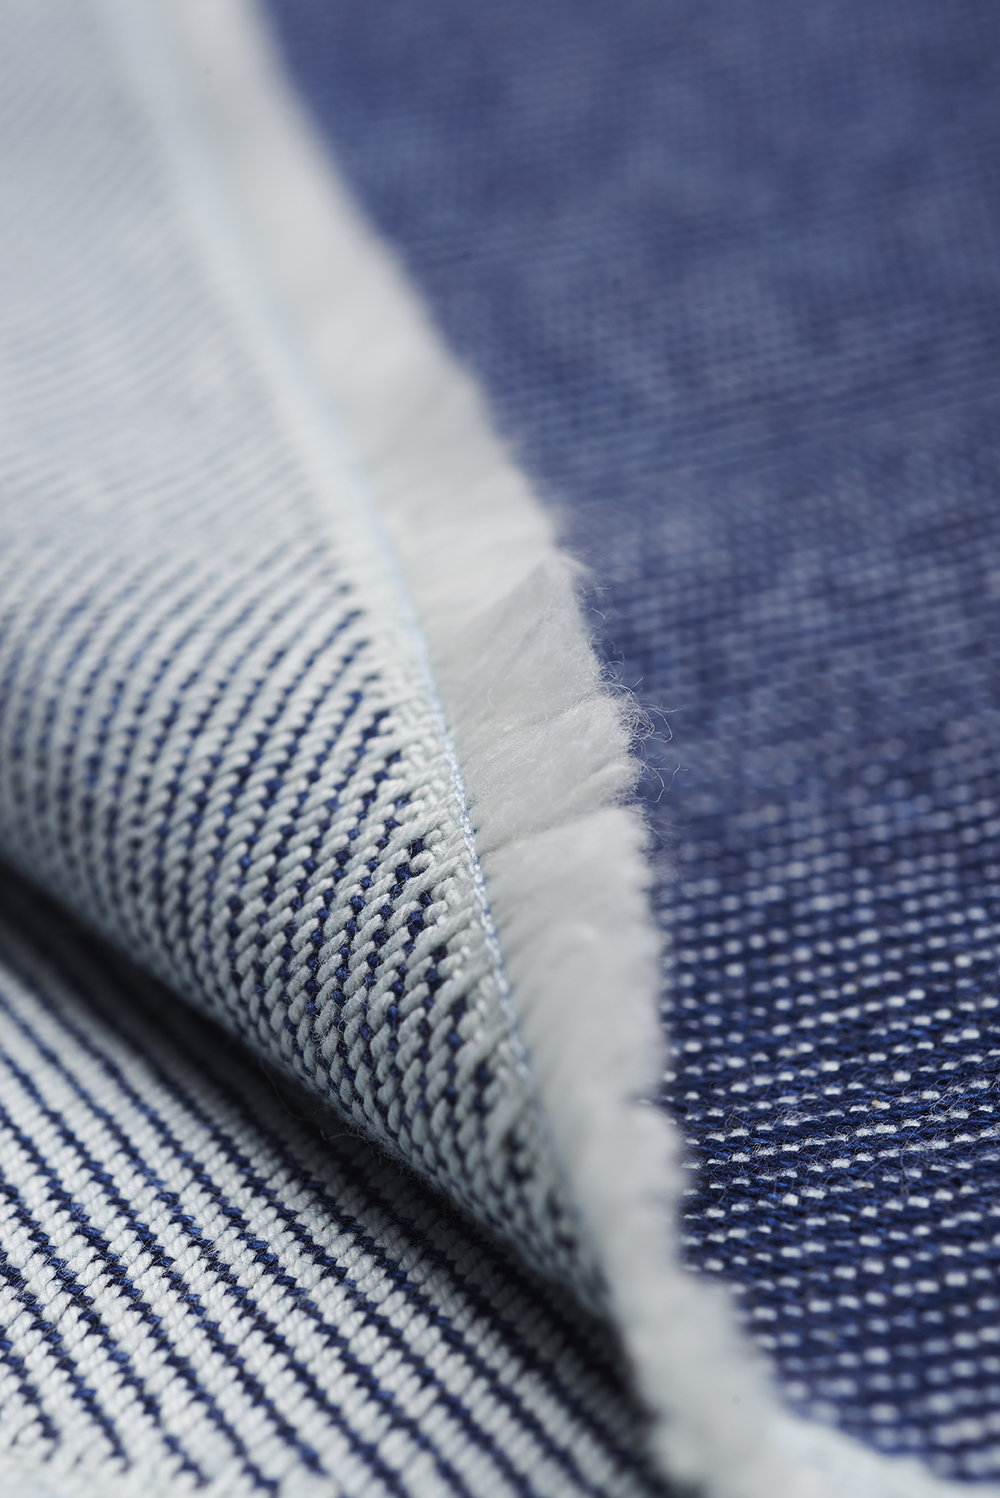 'Lane x London Cloth' Cotton Throw Close Up 3 LR.jpg